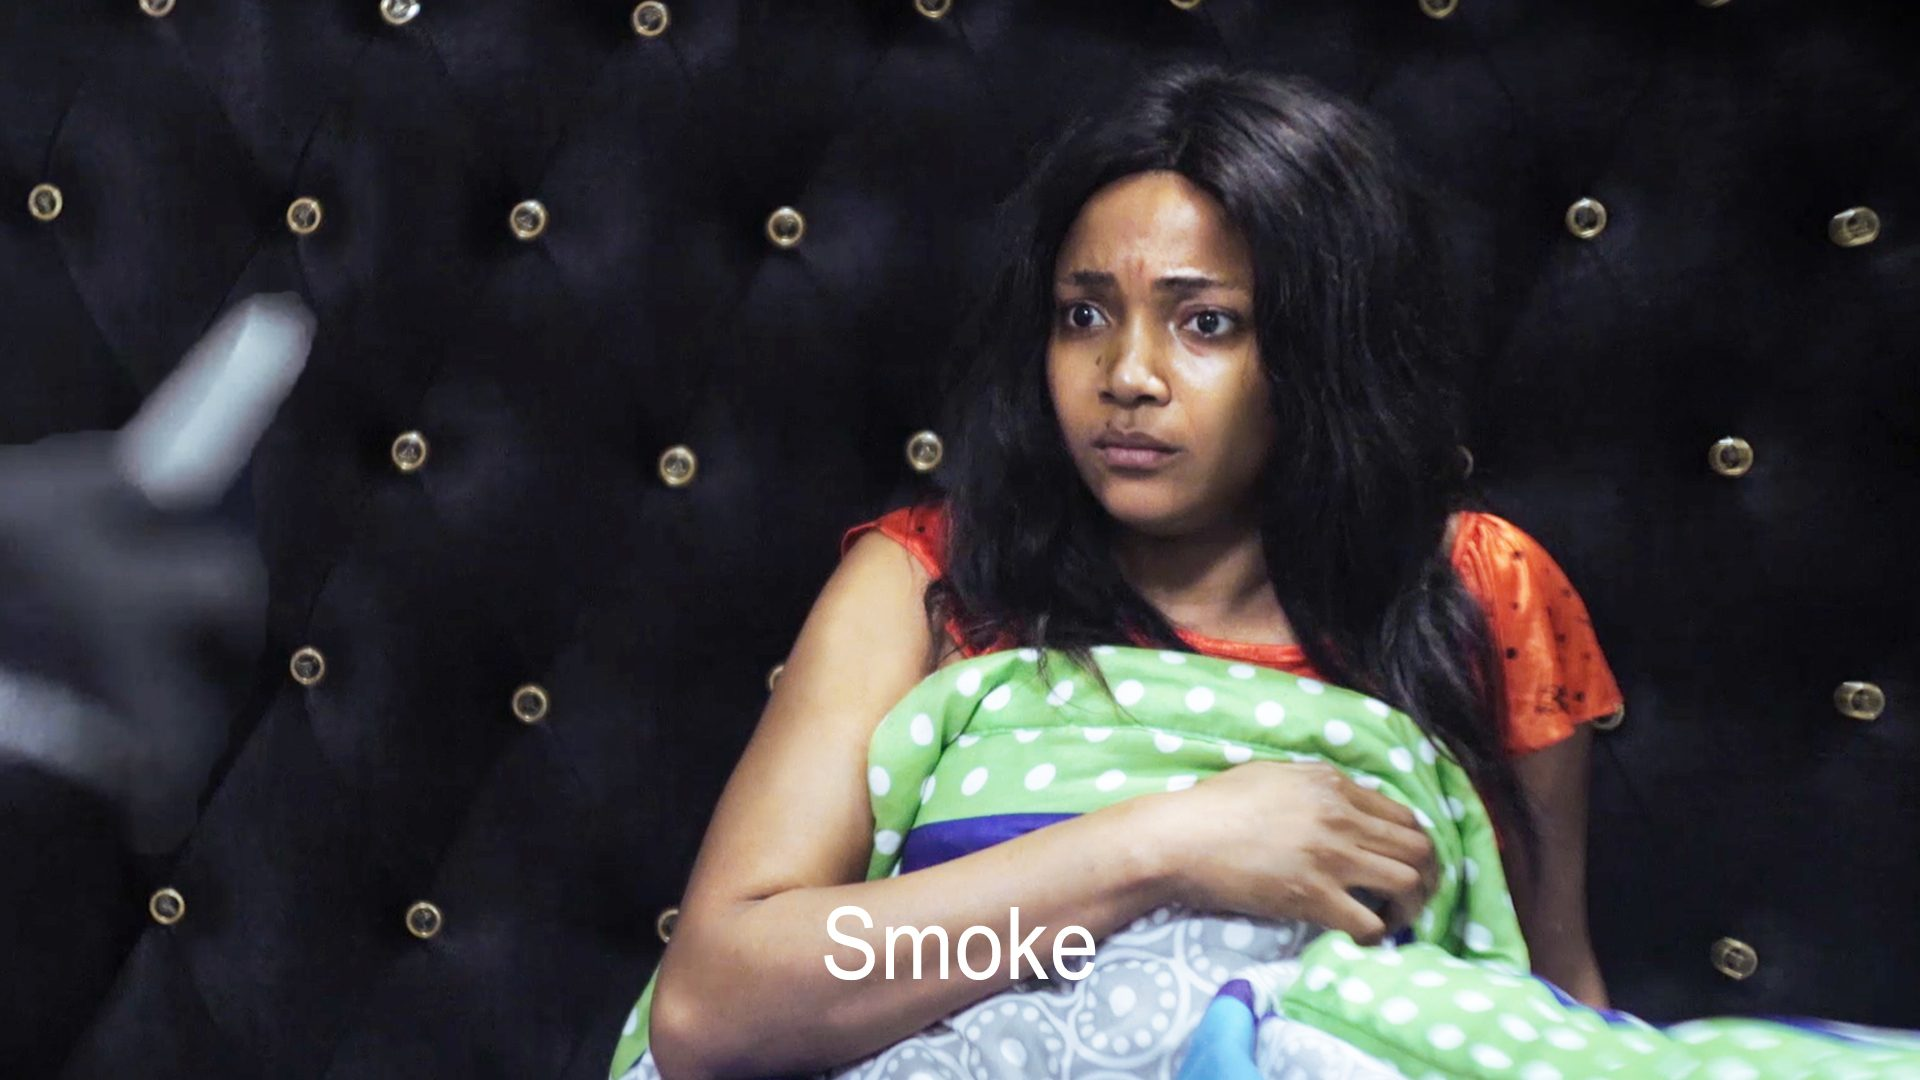 Smoke – Nollywood